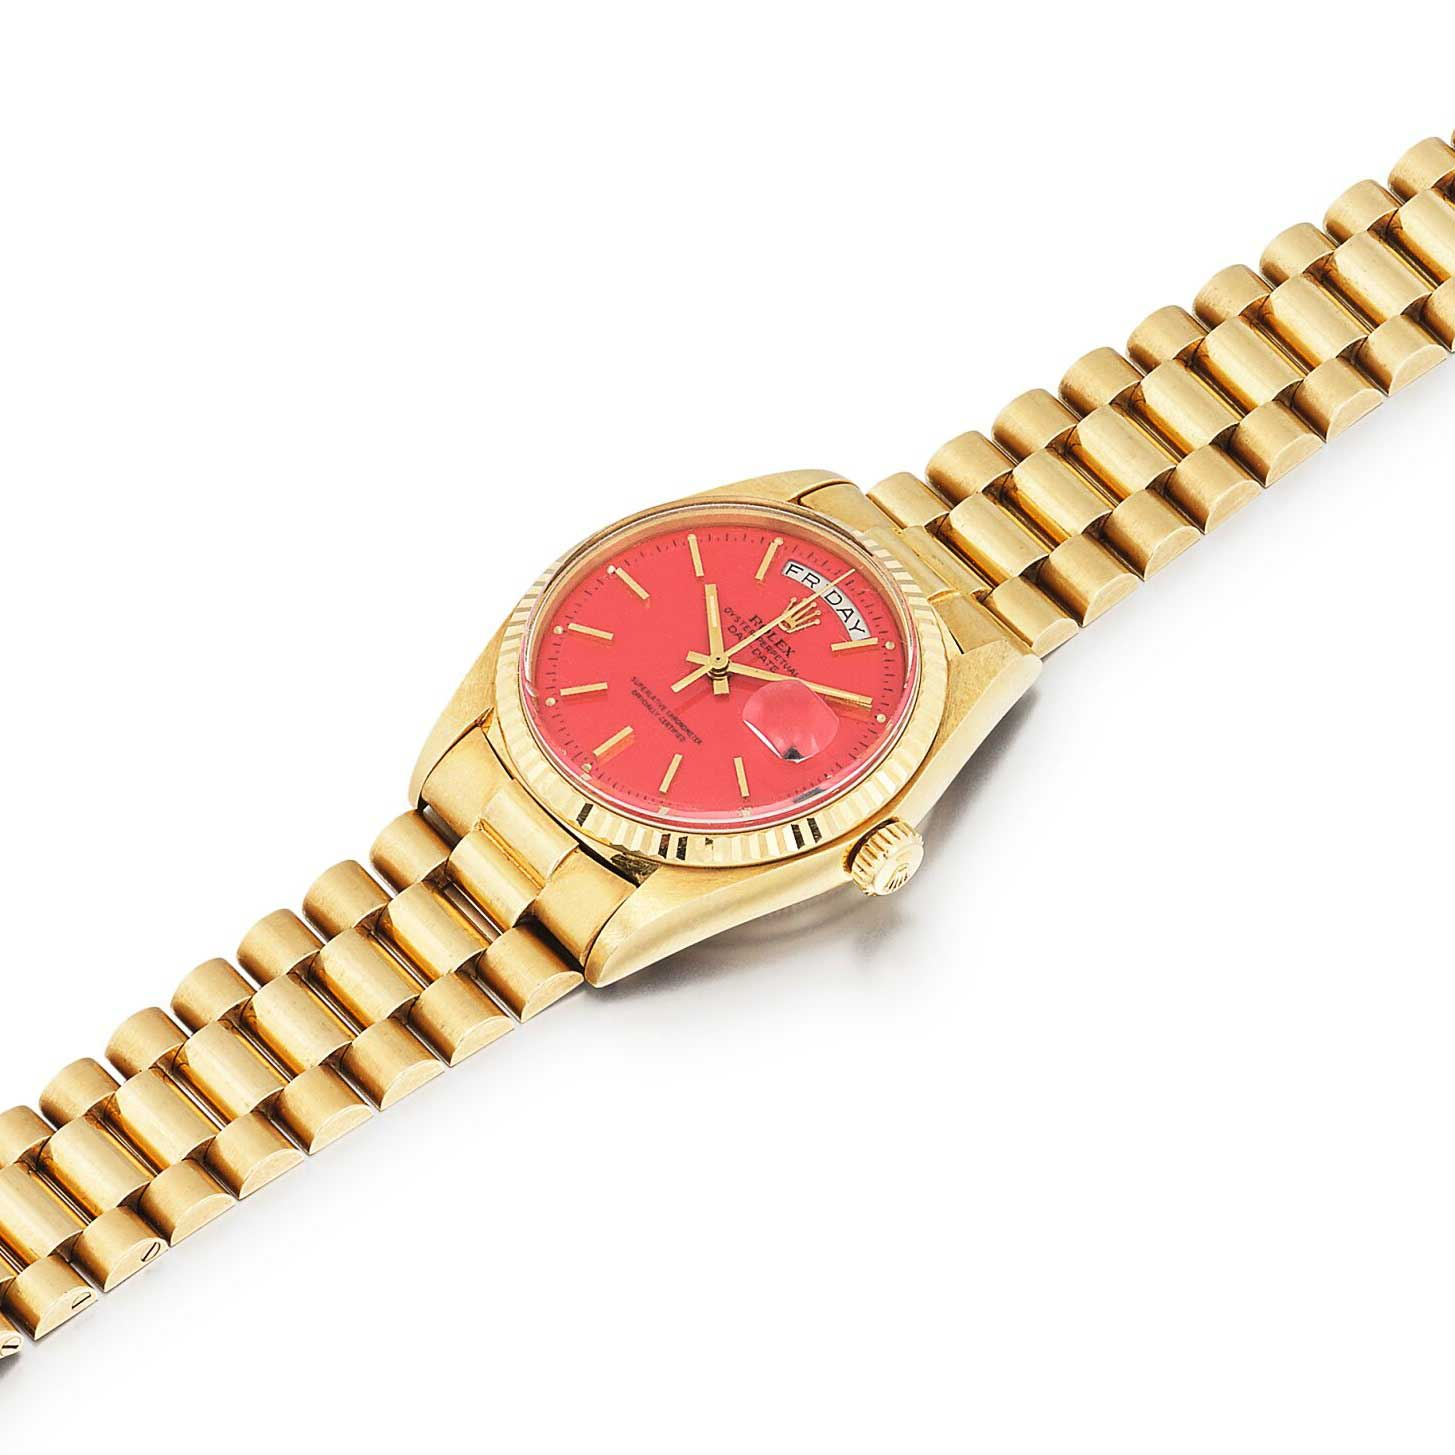 A coral red dial Stella Day-Date ref. 1803 (Image: sothebys.com)